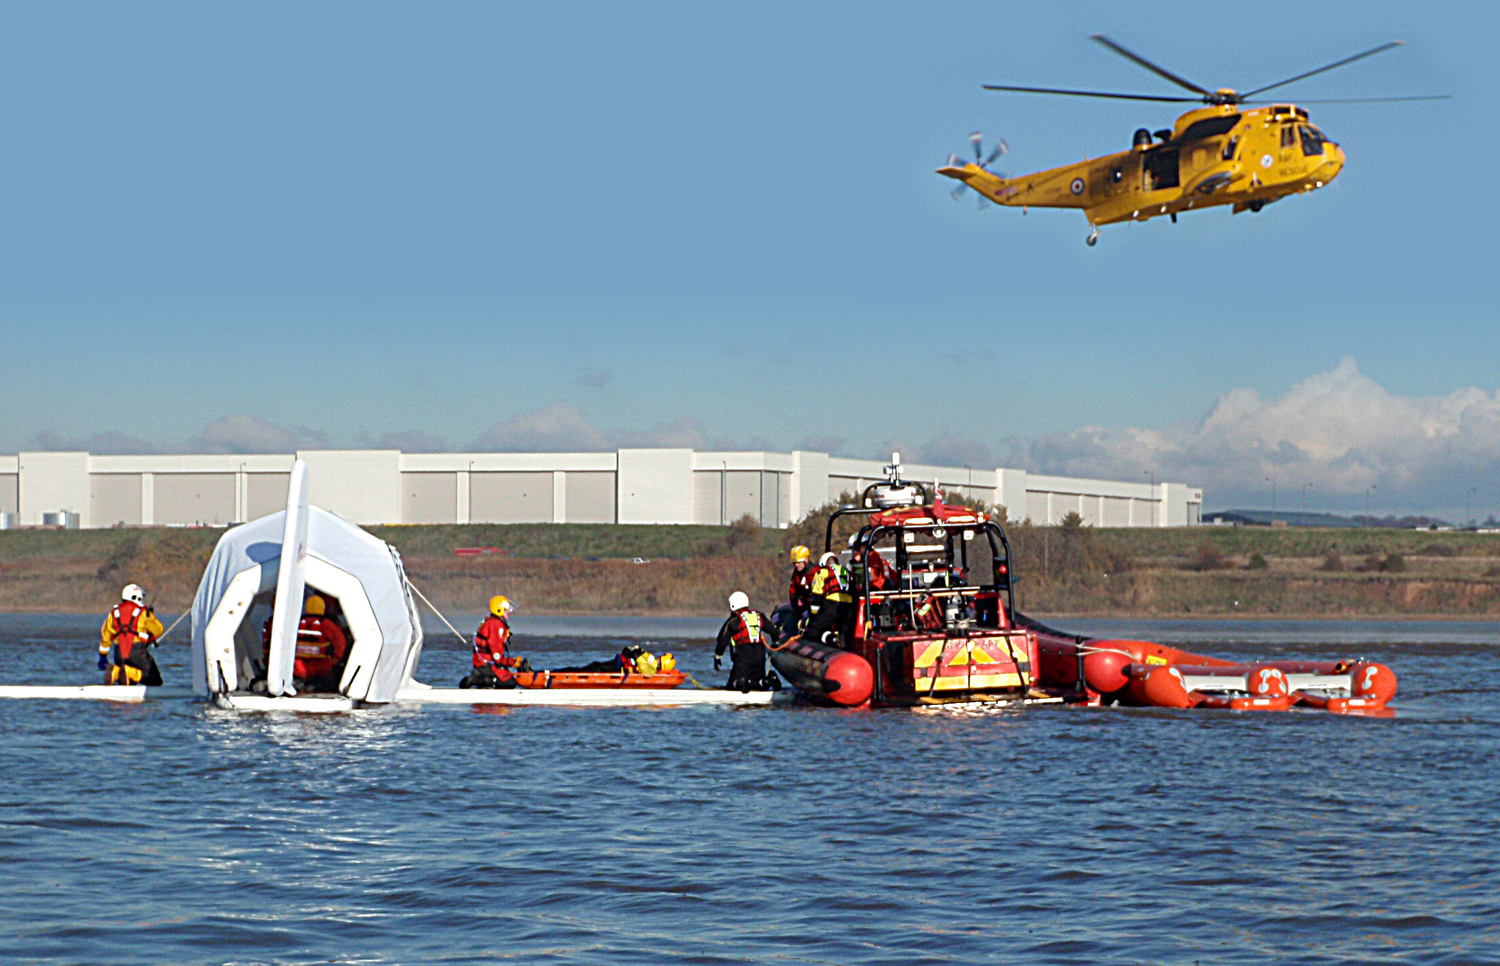 MST Aircraft to water training